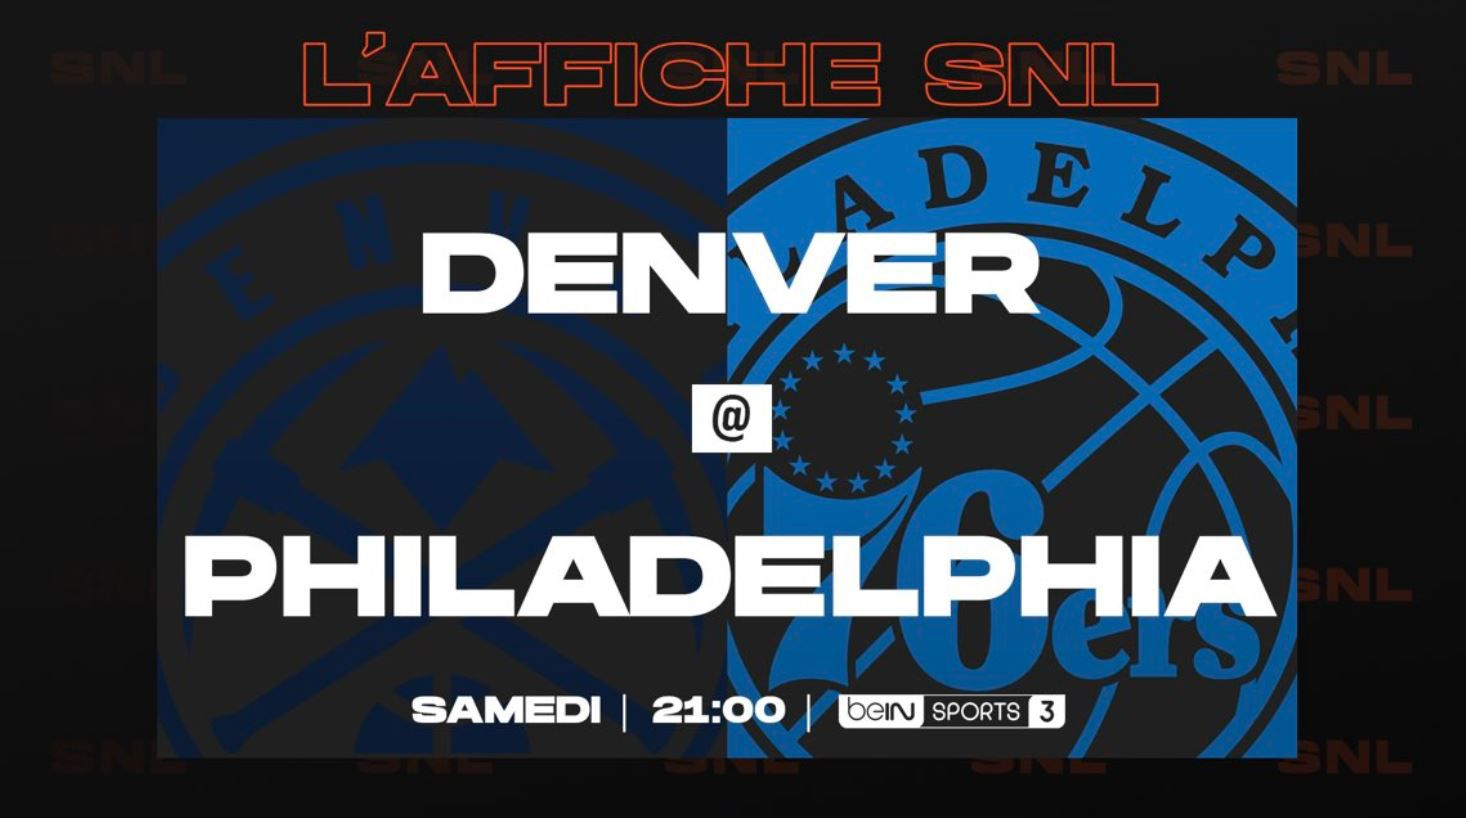 Denver Nuggets @ Philadelphia 76ers en direct samedi sur beIN SPORTS !